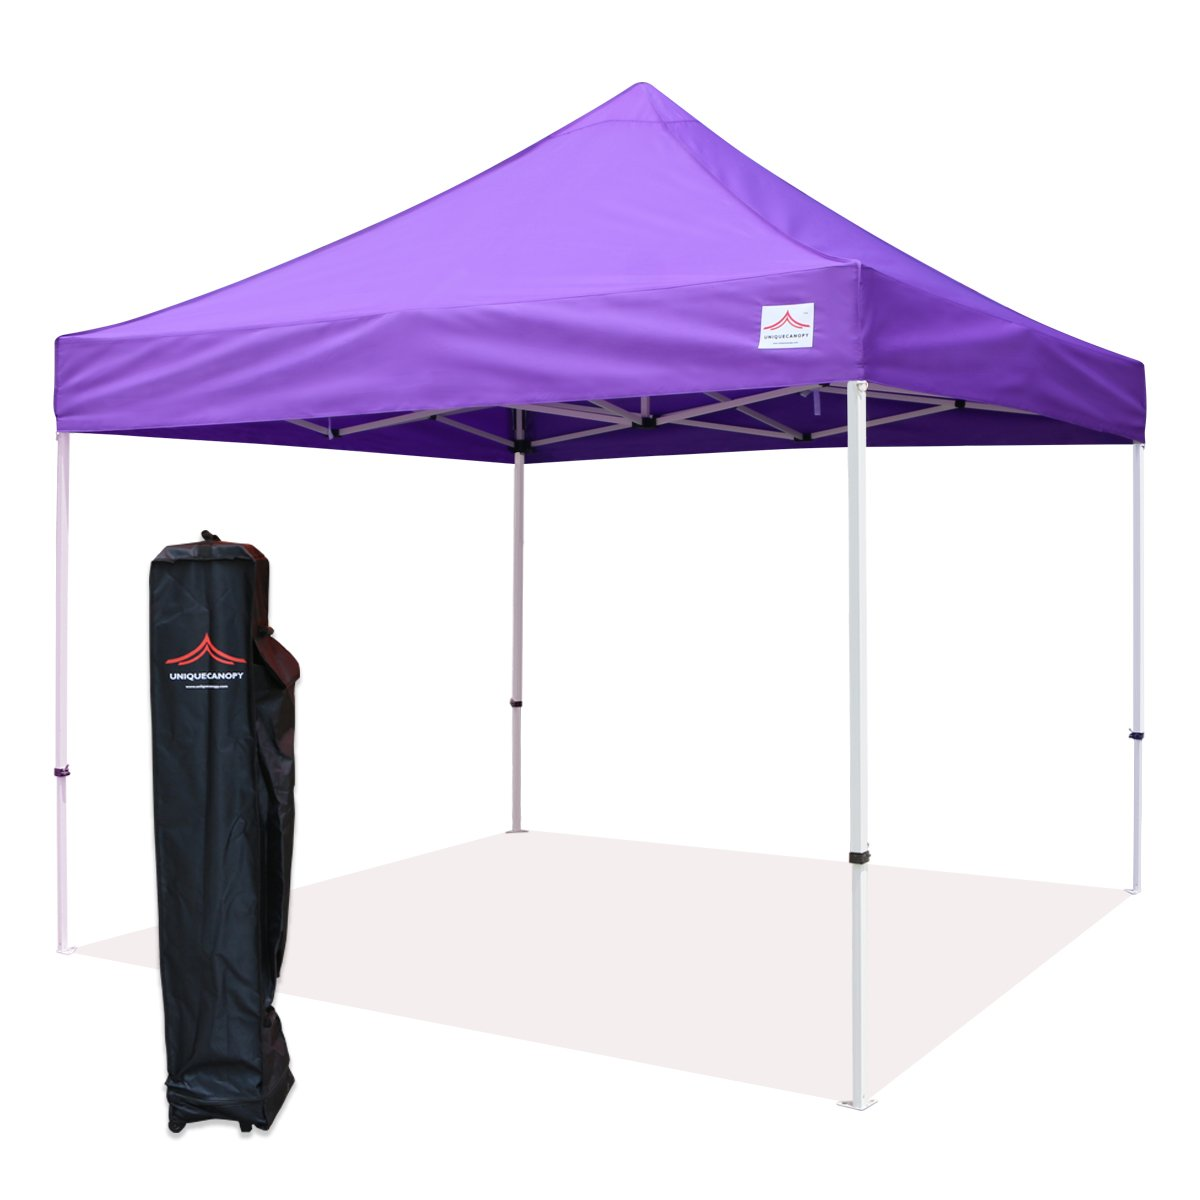 UNIQUECANOPY 10x10 Ez Pop up Canopy Tents for Parties Outdoor Portable Instant Folded Commercial Popup Shelter, with Wheeled Carrying Bag Purple